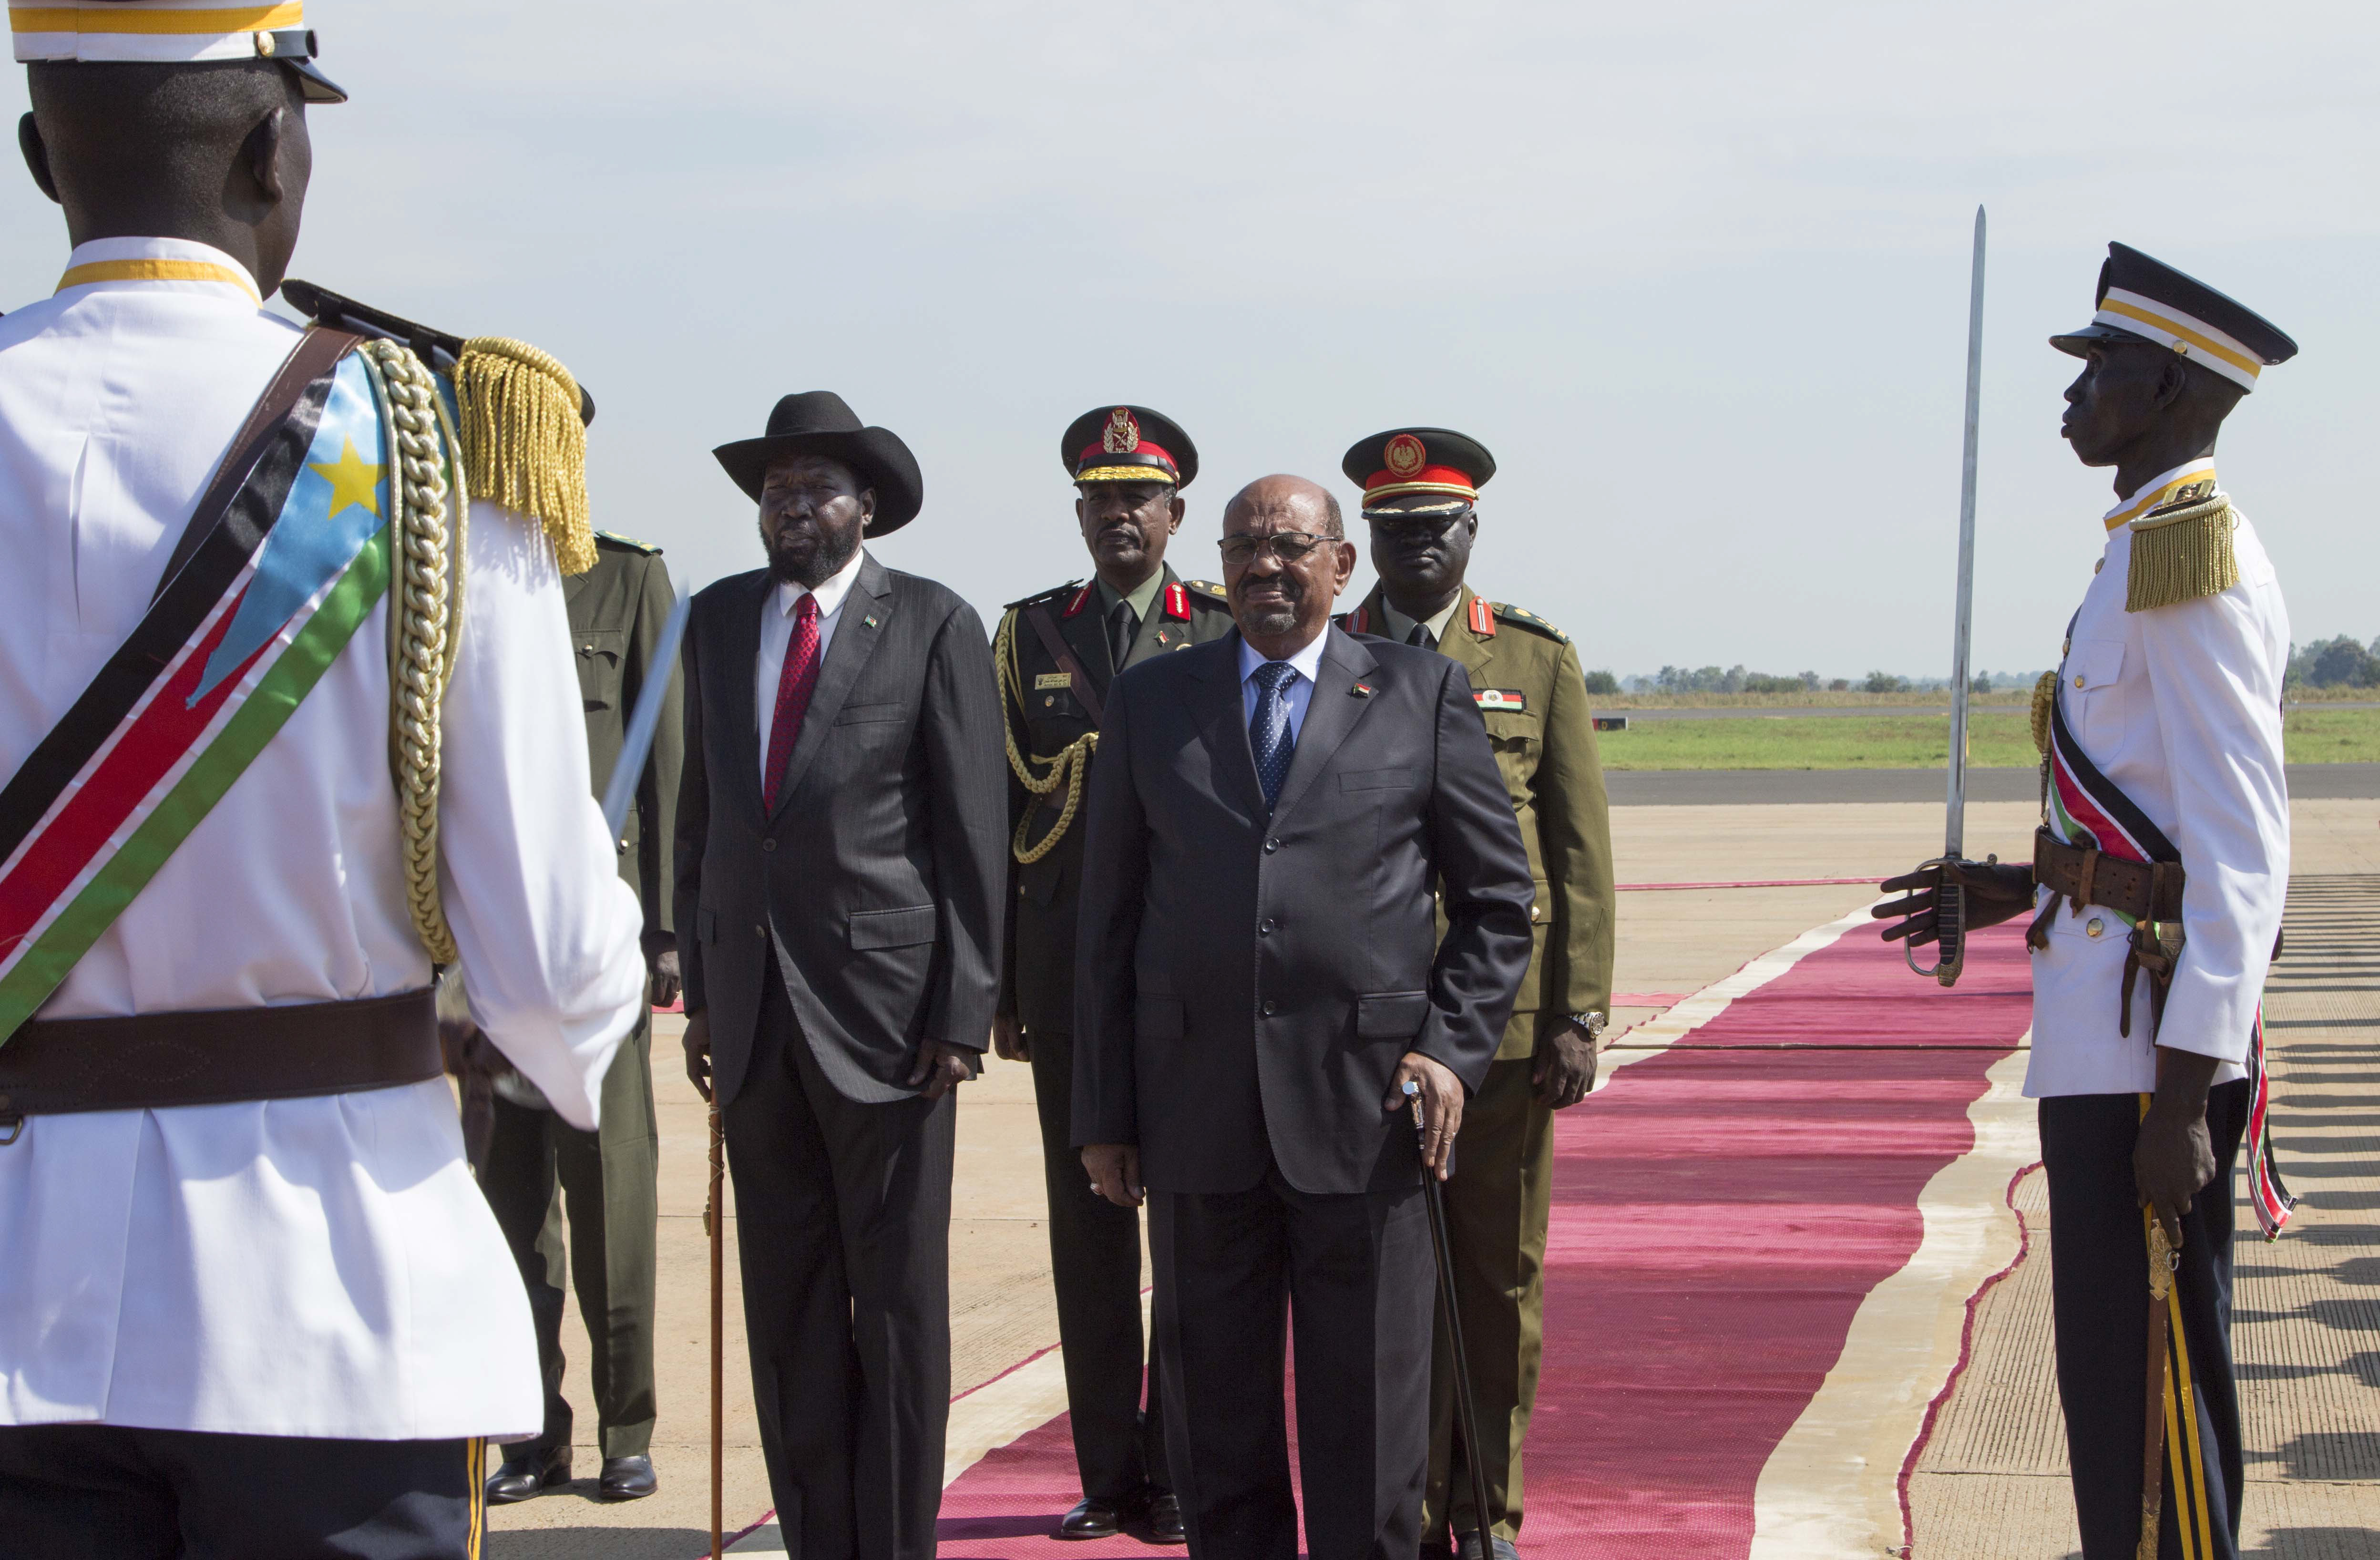 Sudan's President Omar al-Bashir, center, stands with South Sudan's President Salva Kiir, center left, during an arrival ceremony at the airport in Juba, South Sudan Wednesday, Oct. 31, 2018. For the first time since fleeing the war-torn country more than two years ago, South Sudan's opposition leader Riek Machar returned on Wednesday to take part in a nationwide peace celebration. (AP Photo/Bullen Chol)